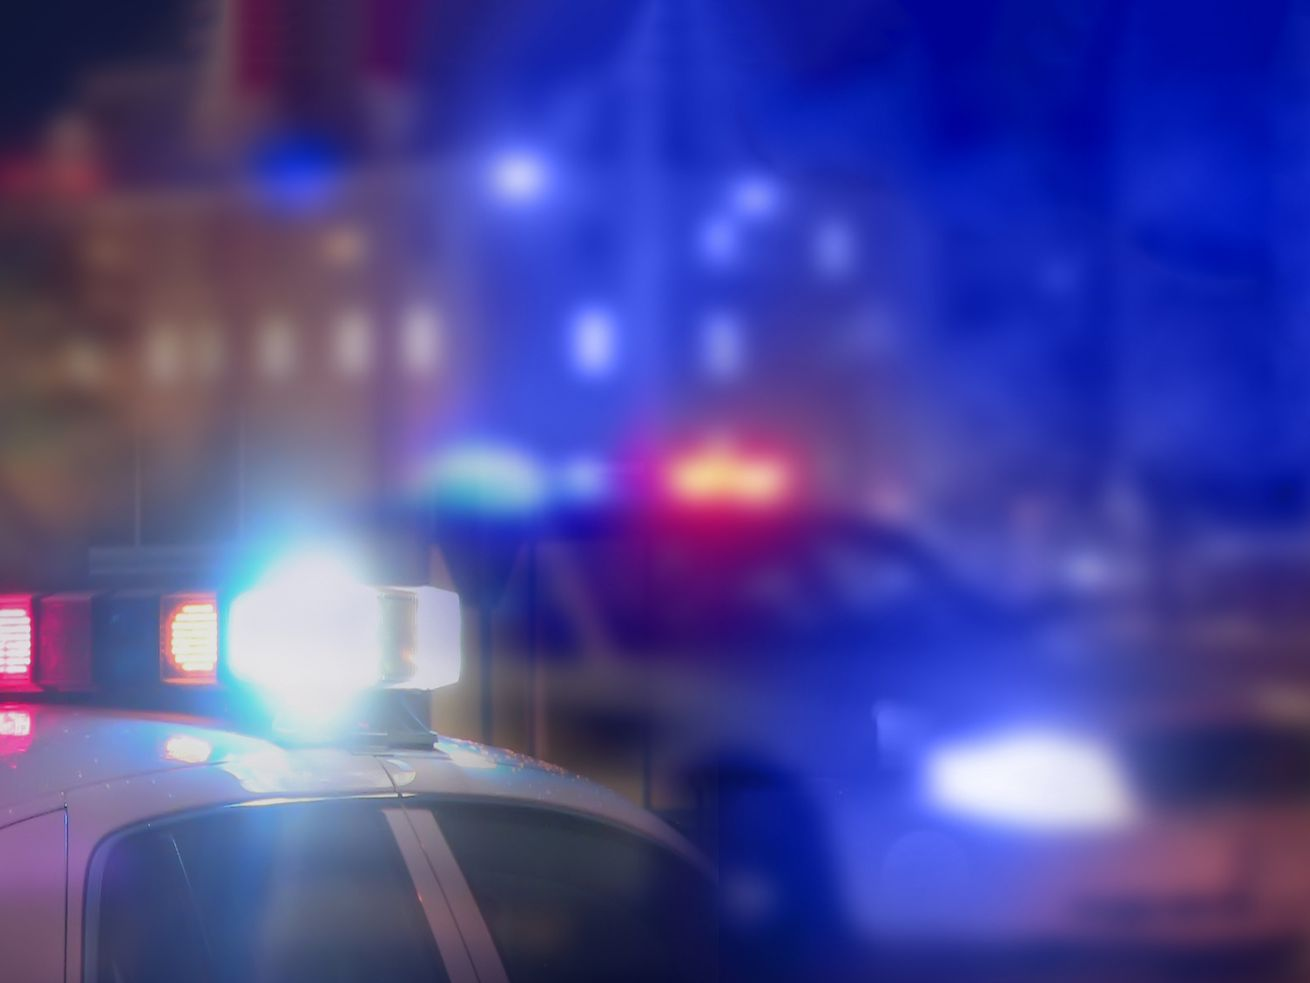 A 14-year-old boy was arrested Feb. 23, 2021, and charged with three carjackings and a vehicle theft from January.